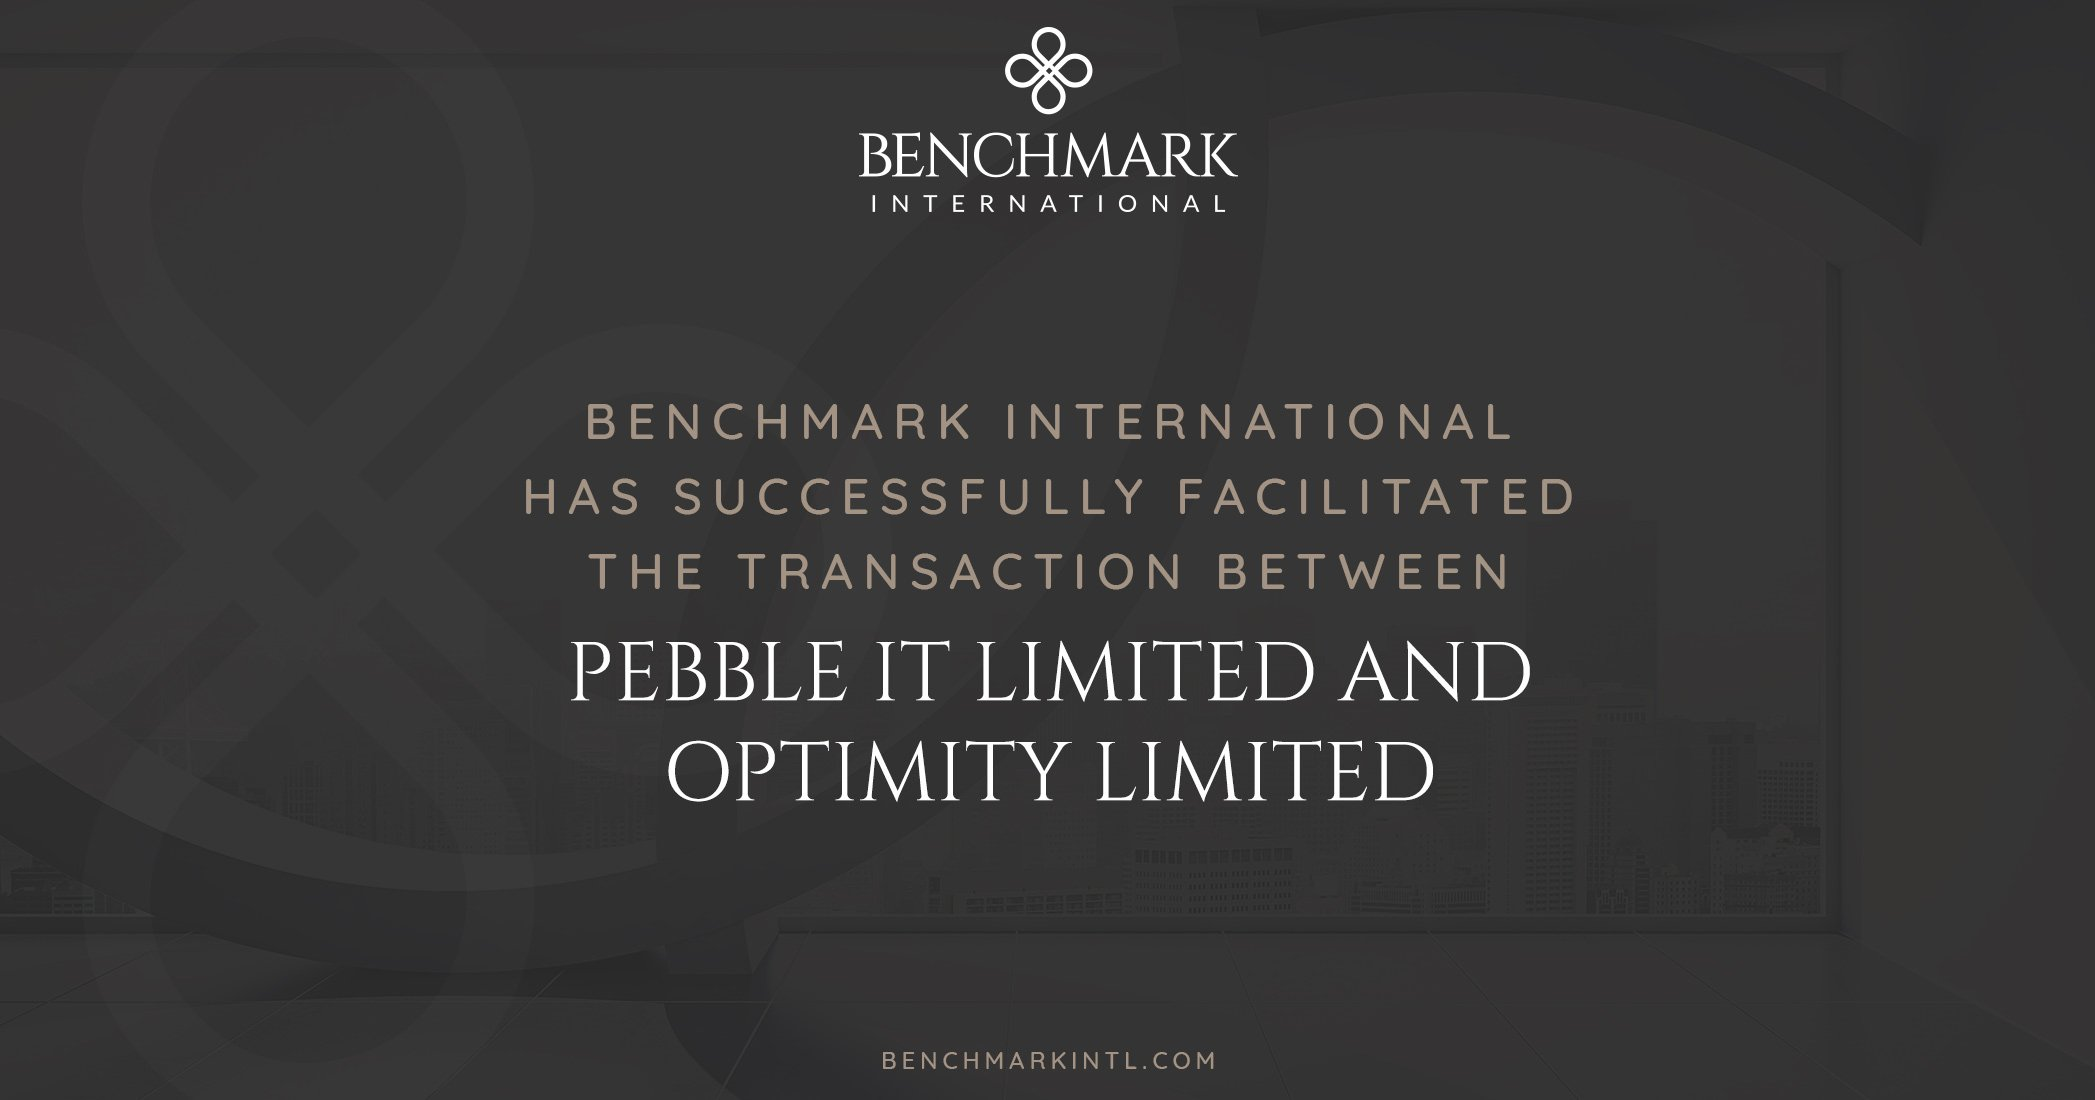 Benchmark International Successfully Facilitated the Transaction Between Pebble IT Limited and Optimity Limited